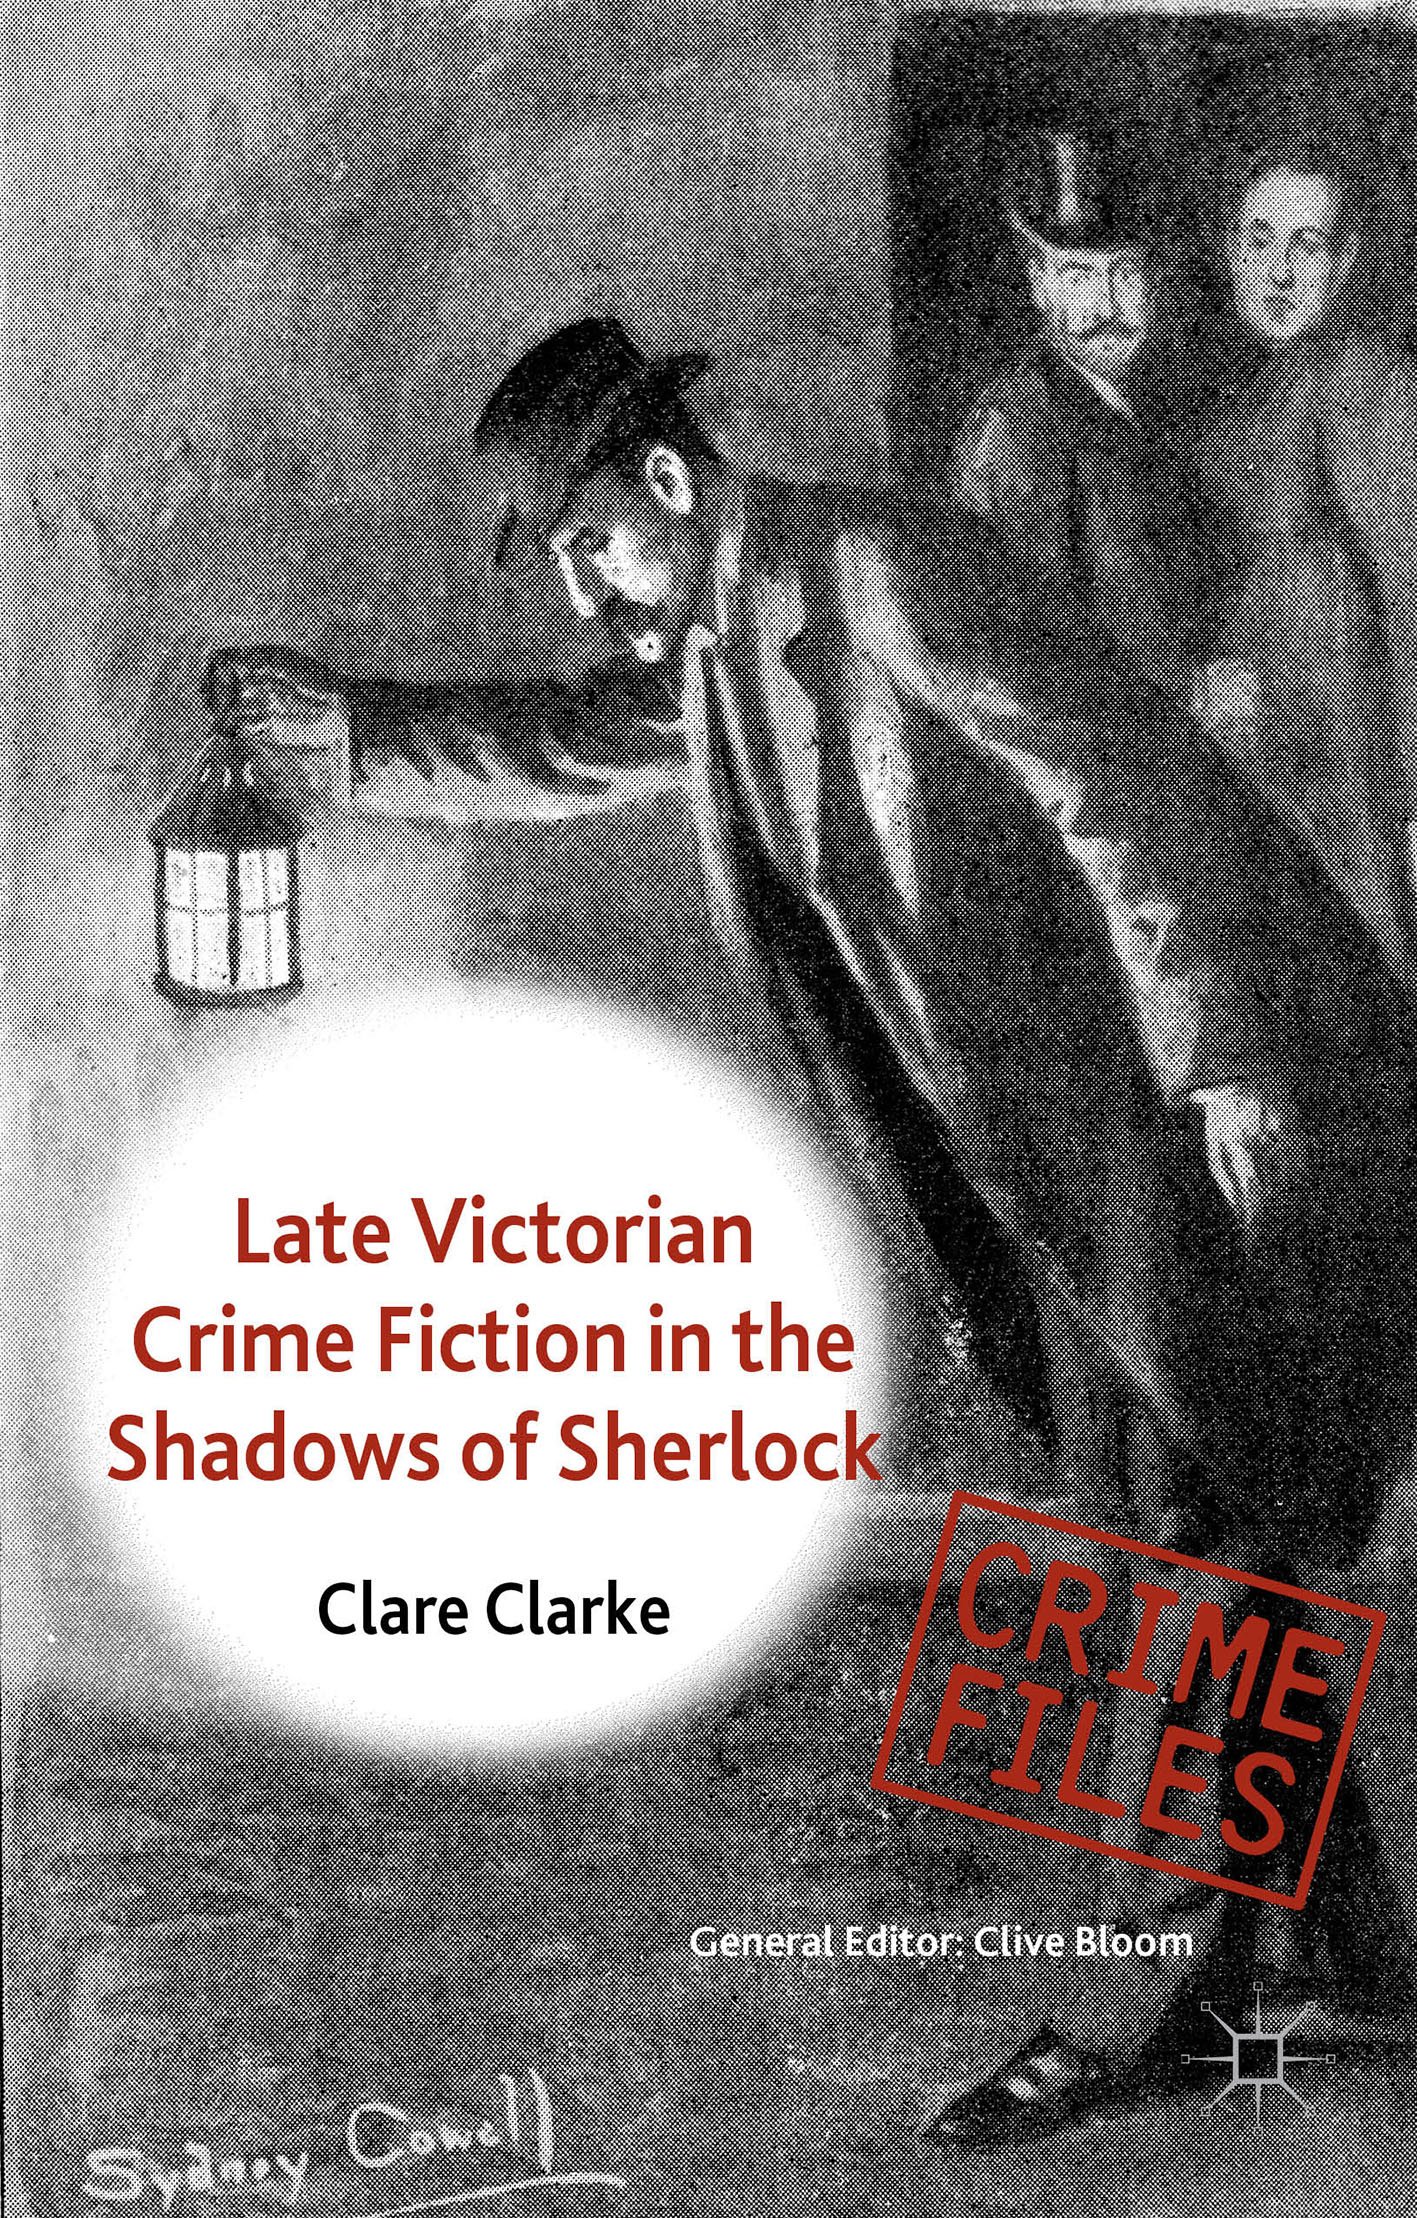 Late Victorian Crime Fiction in the Shadows of Sherlock